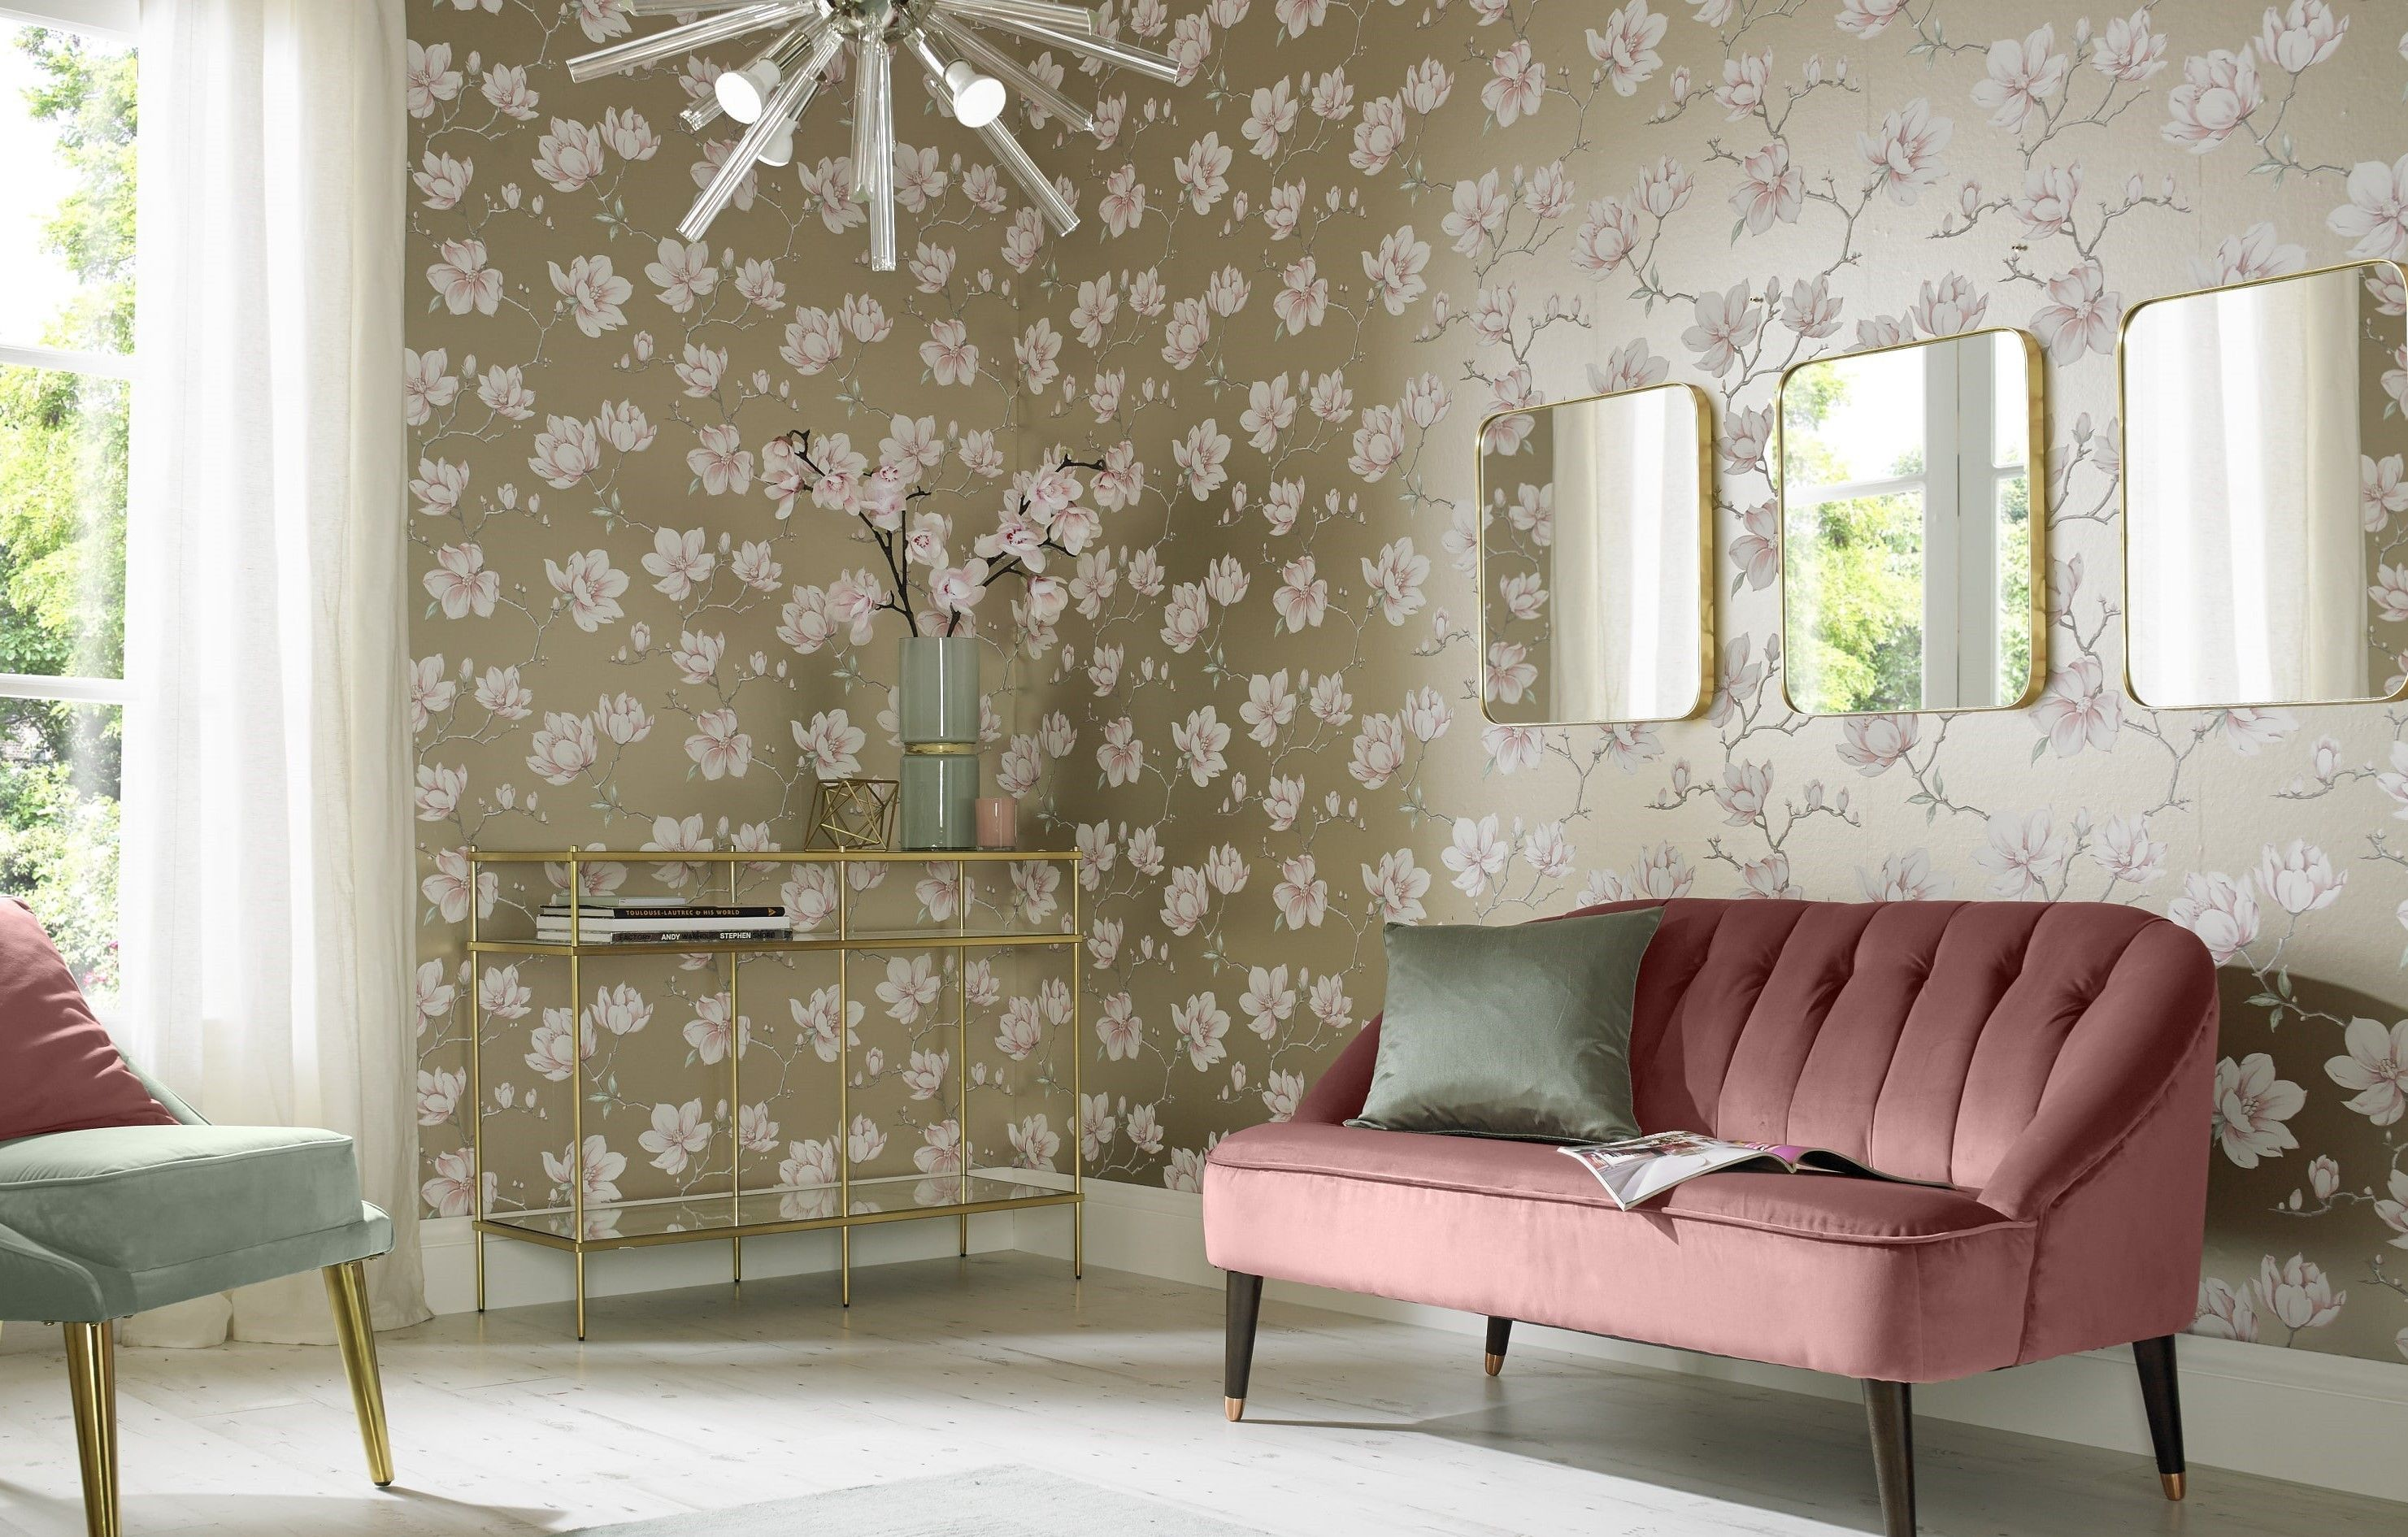 Graham & Brown's 'Wallpaper of the Year' for 2018, Pierre, which is seen here in a pink hand-painted magnolia design with a white gold metallic backdrop, currently from £40 to £32 a roll.